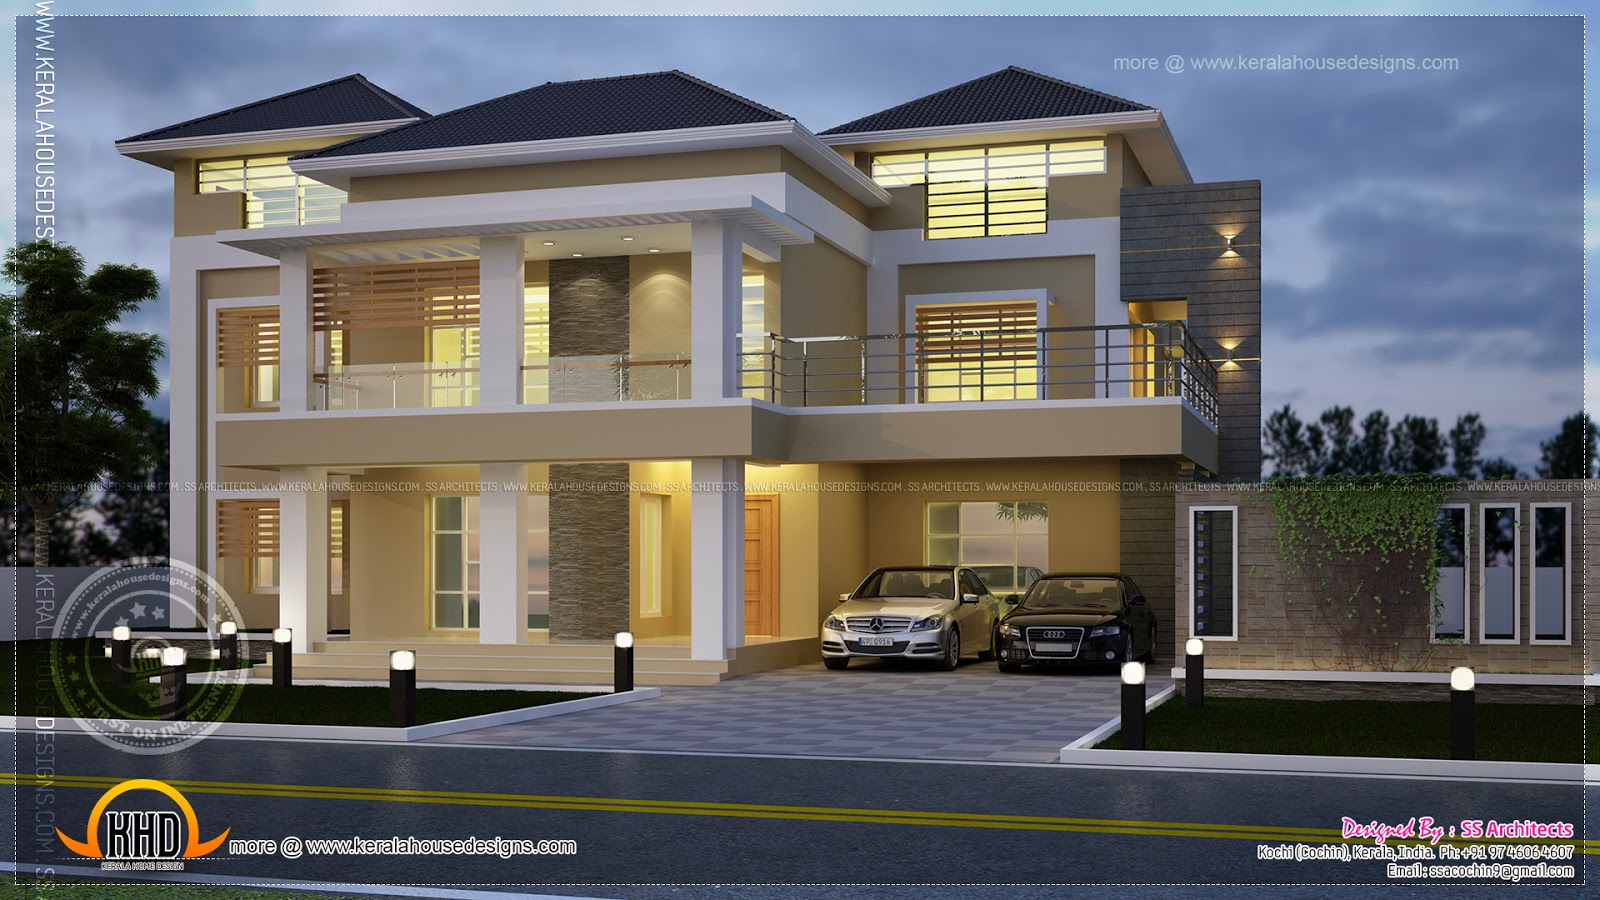 Modern villa night view elevation kerala home design and for Modern house view